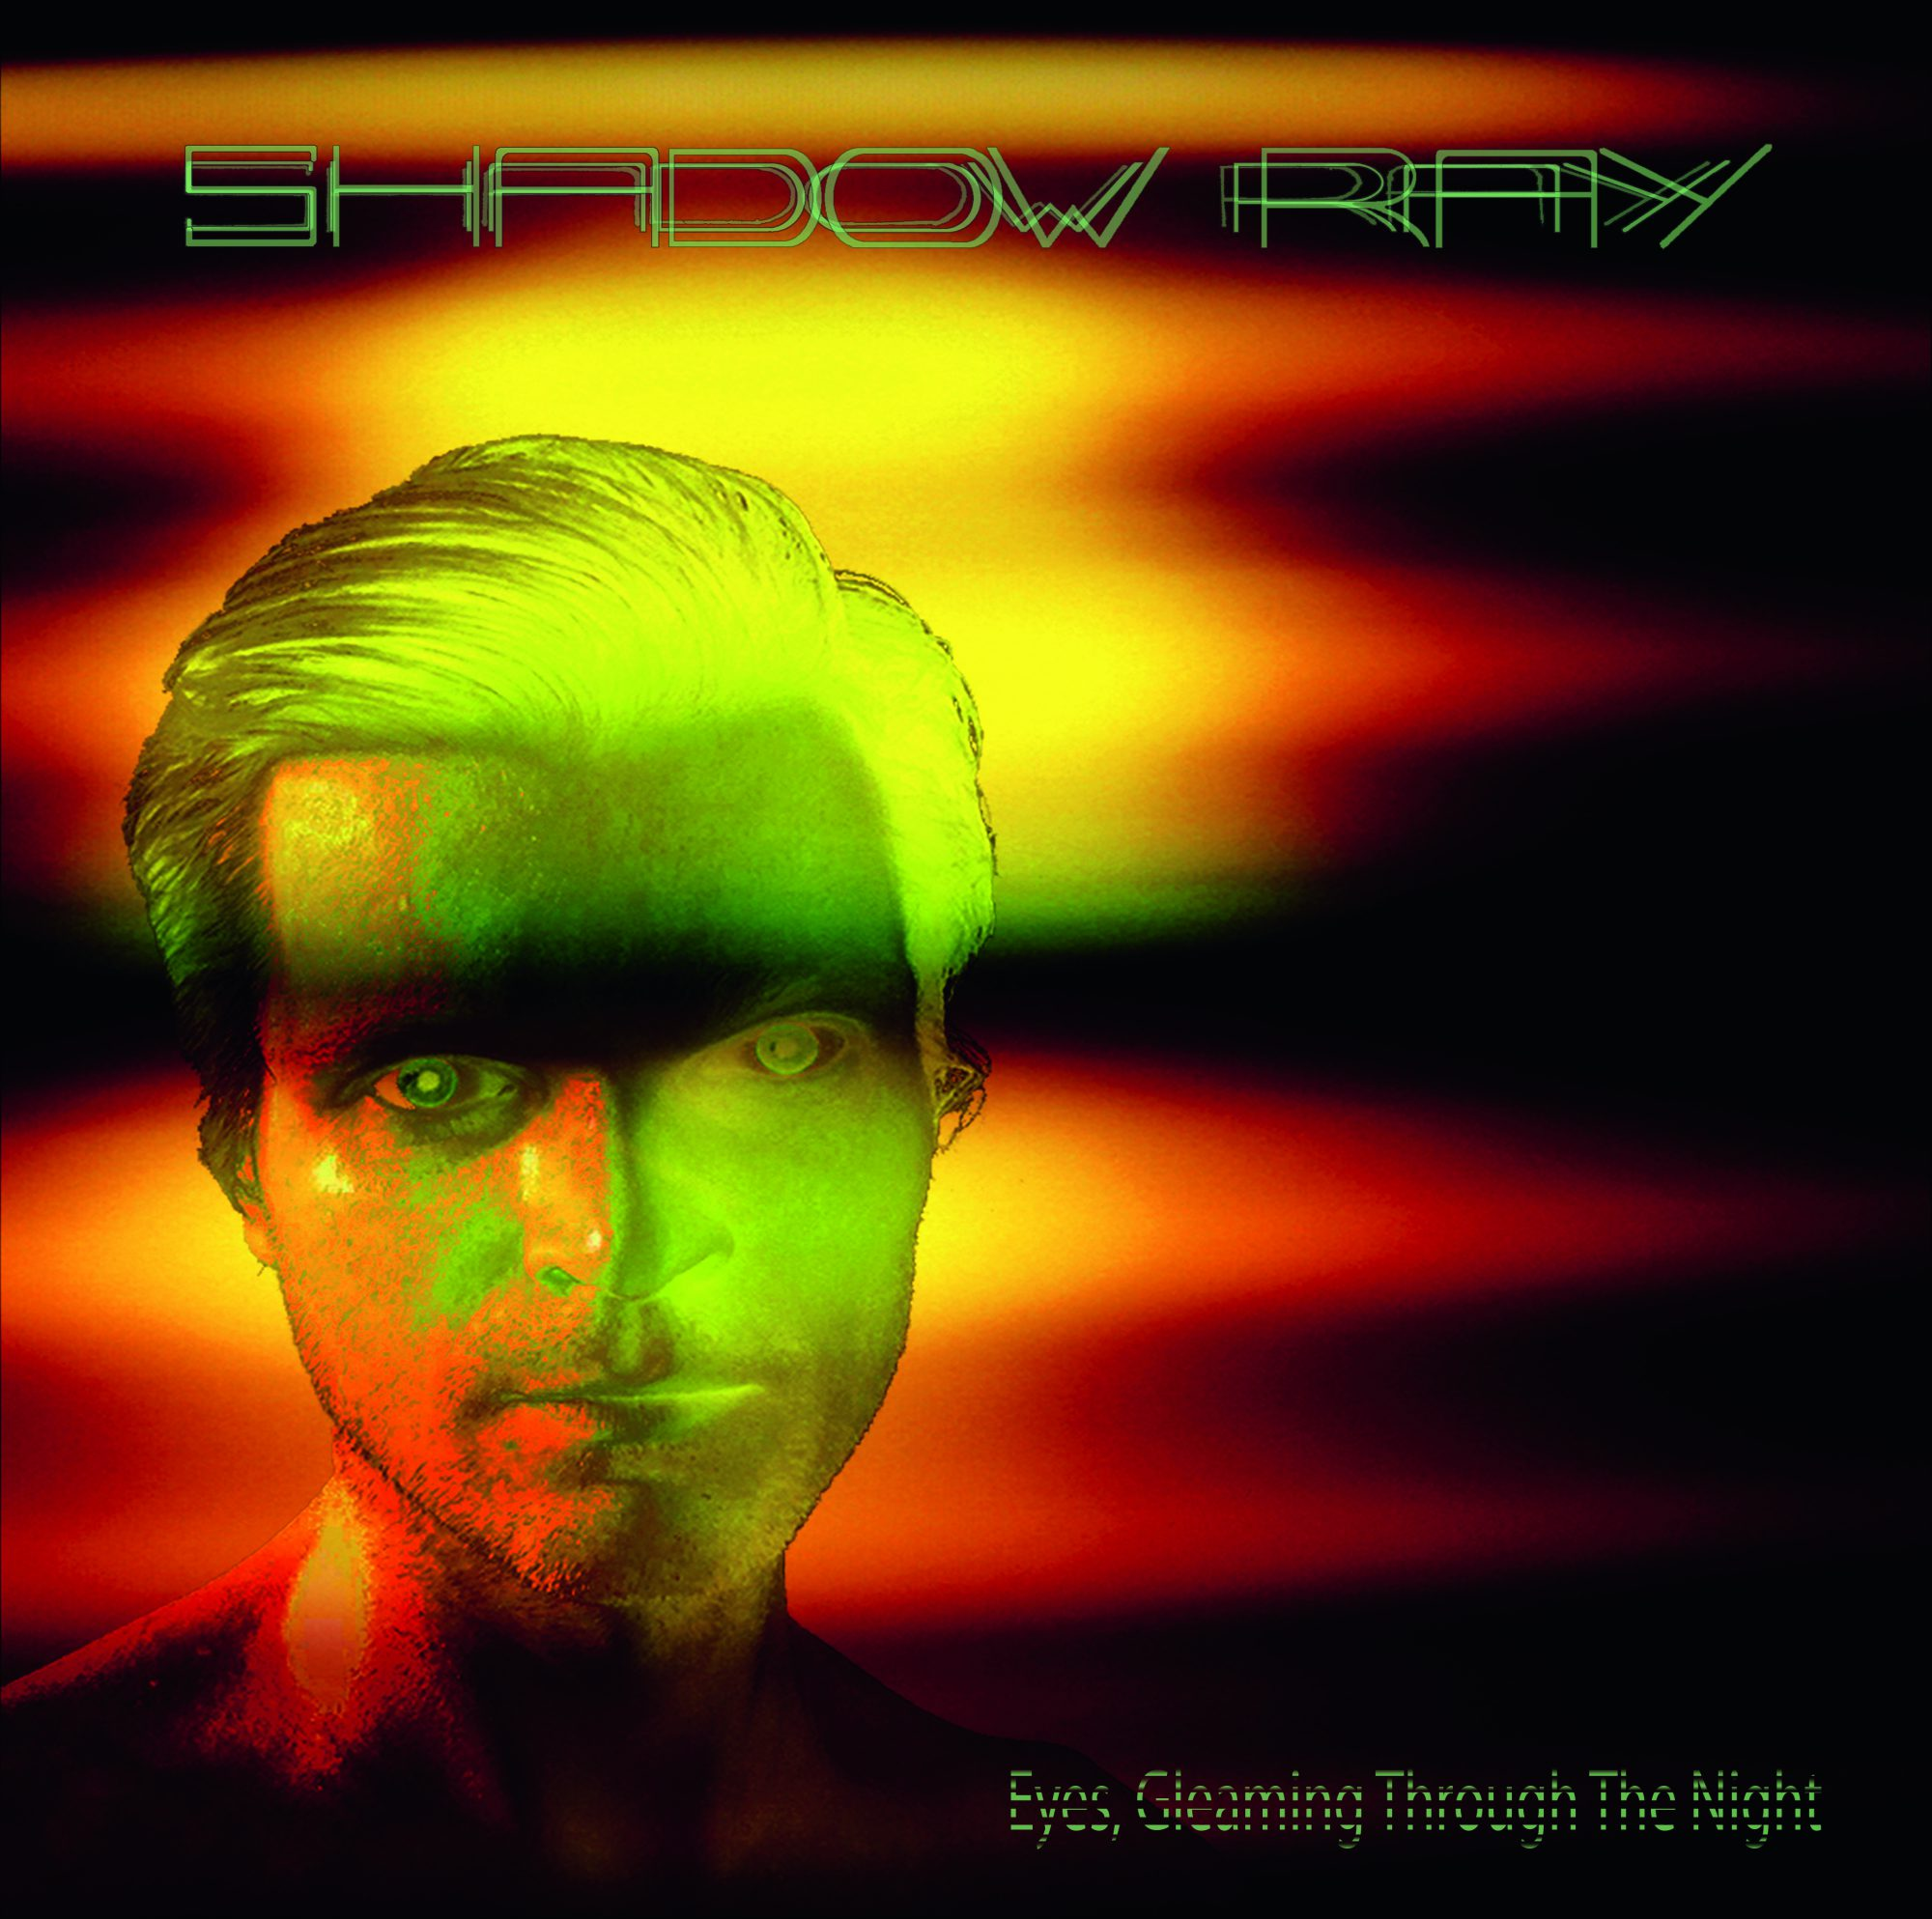 Shadow Ray - eyes gleaming through the night